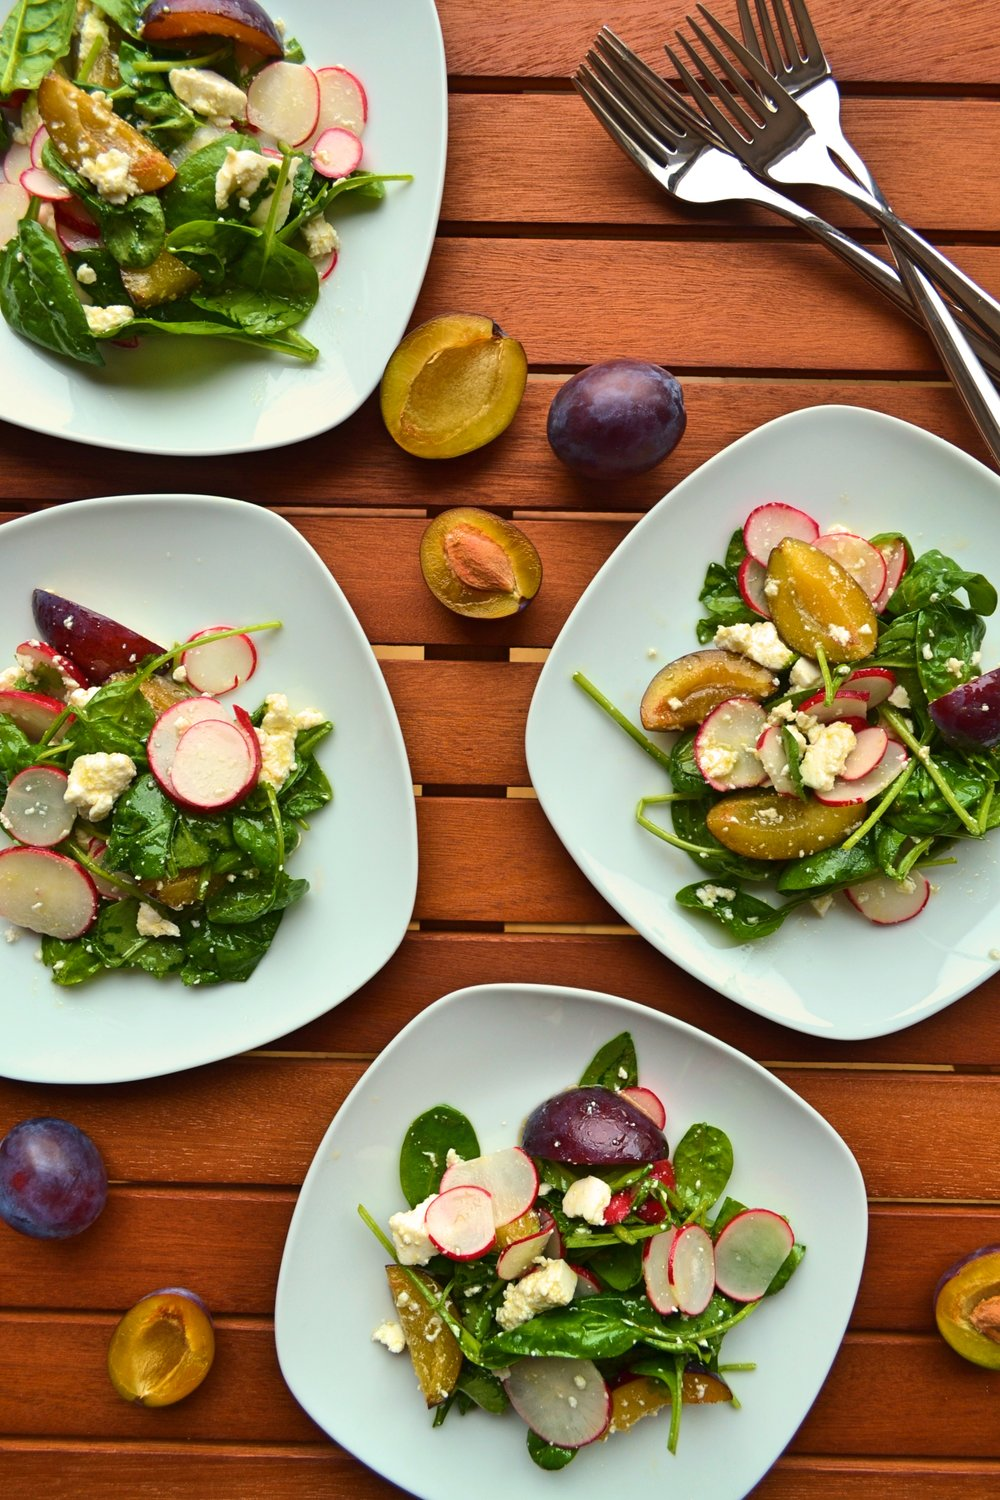 Plum_radishes_goat_cheese_cilantro_salad5.jpg